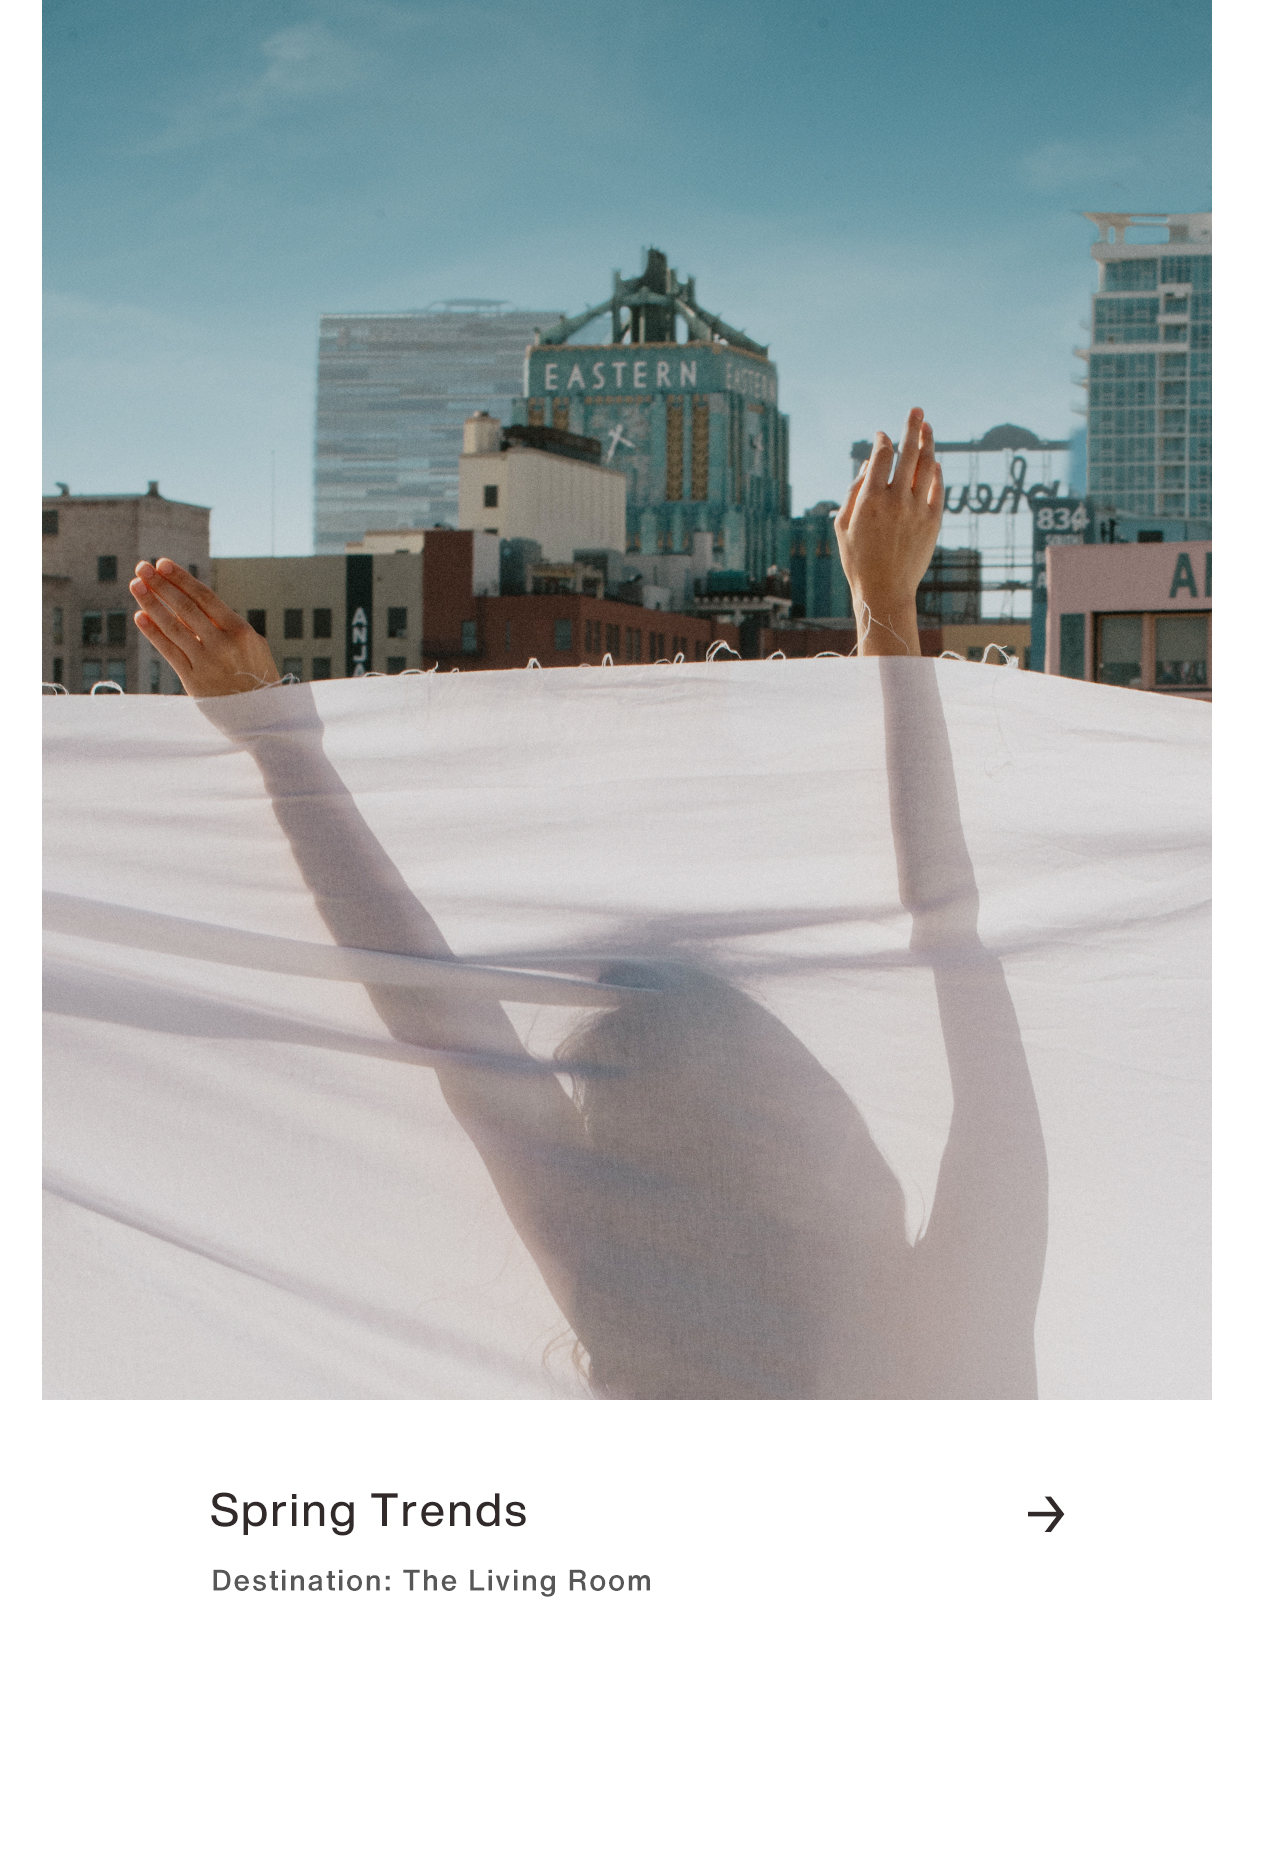 Spring Trends: Warm weather & sunshine are here.